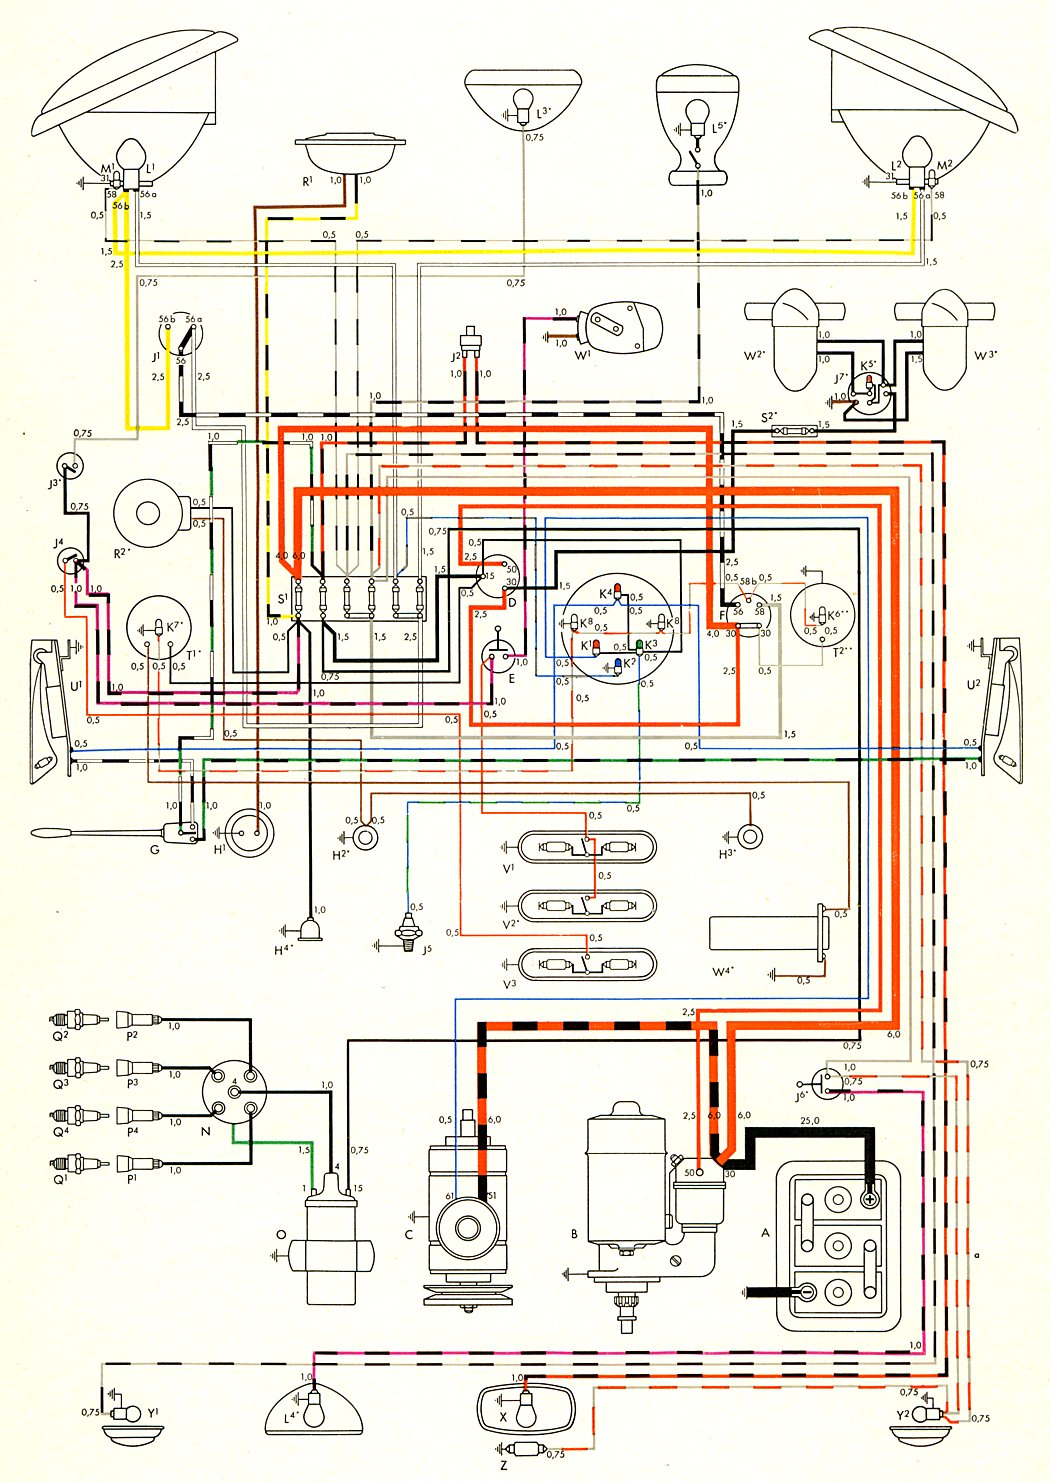 thesamba com type 2 wiring diagrams rh thesamba com 1978 vw bus wiring diagram 1973 vw bus wiring diagram